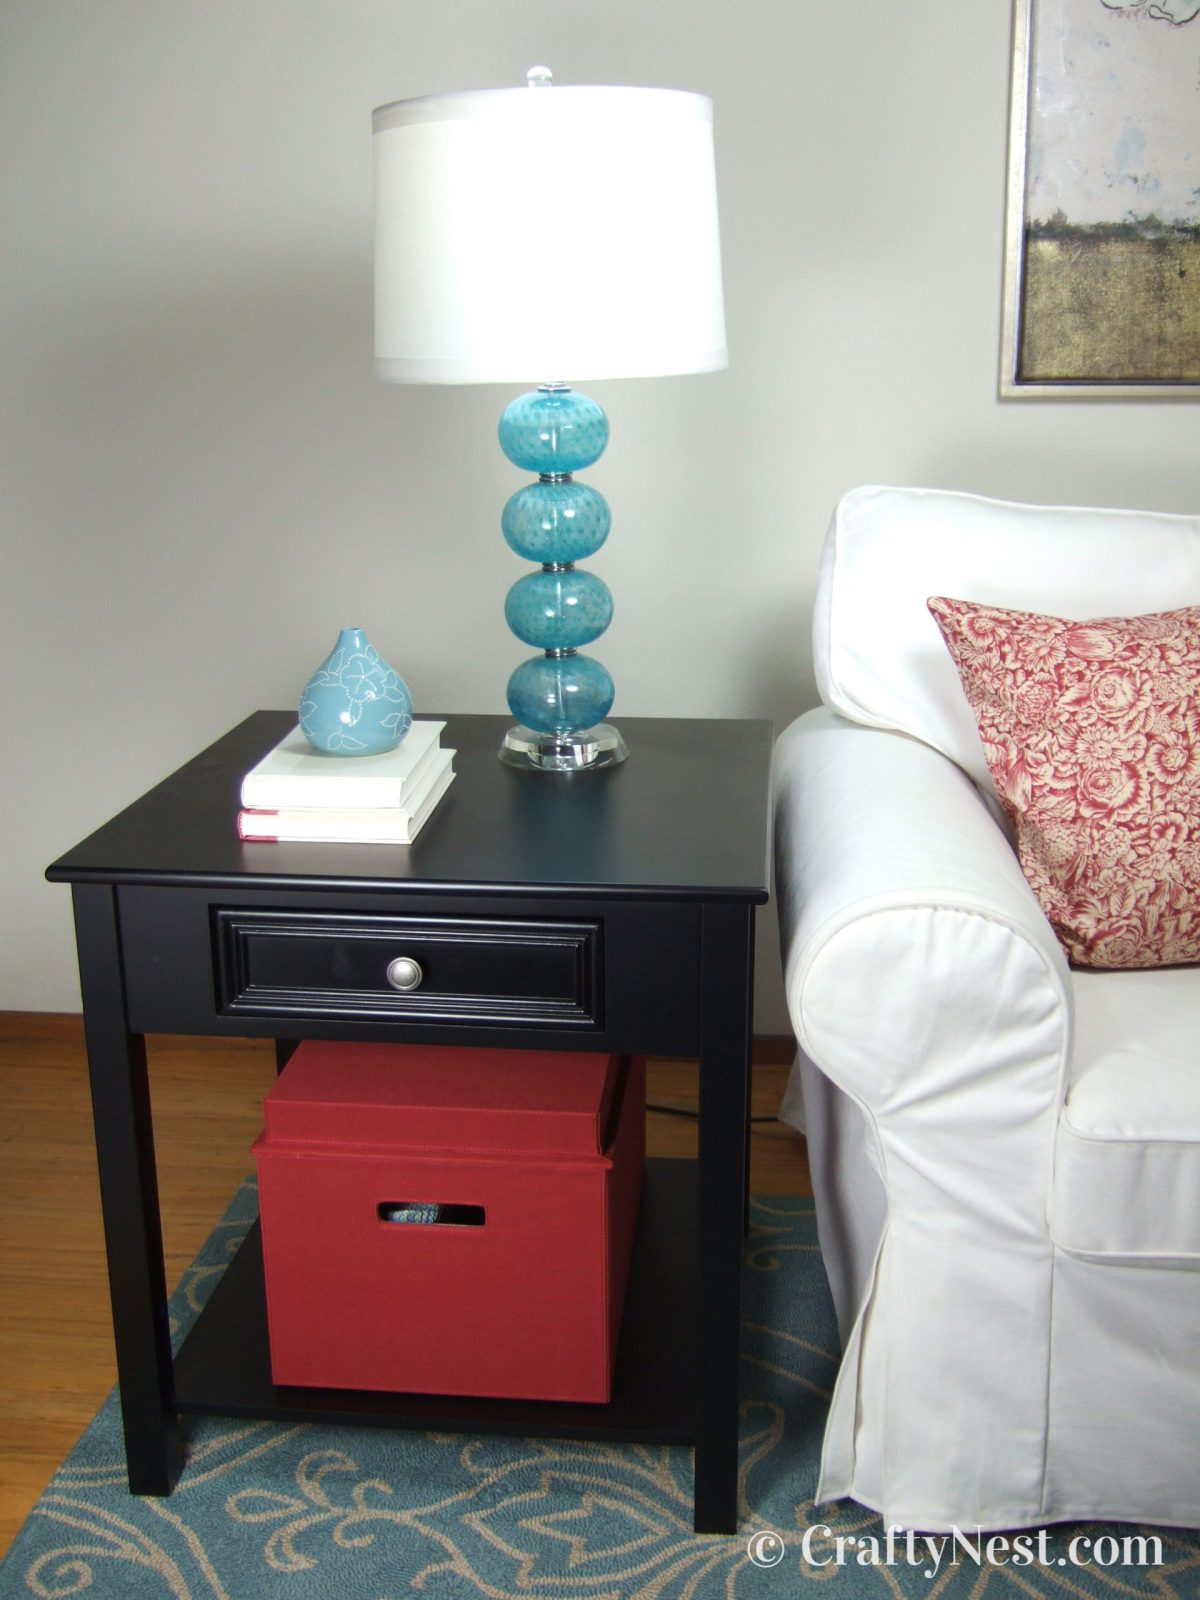 Closed Bento Box on side table, photo